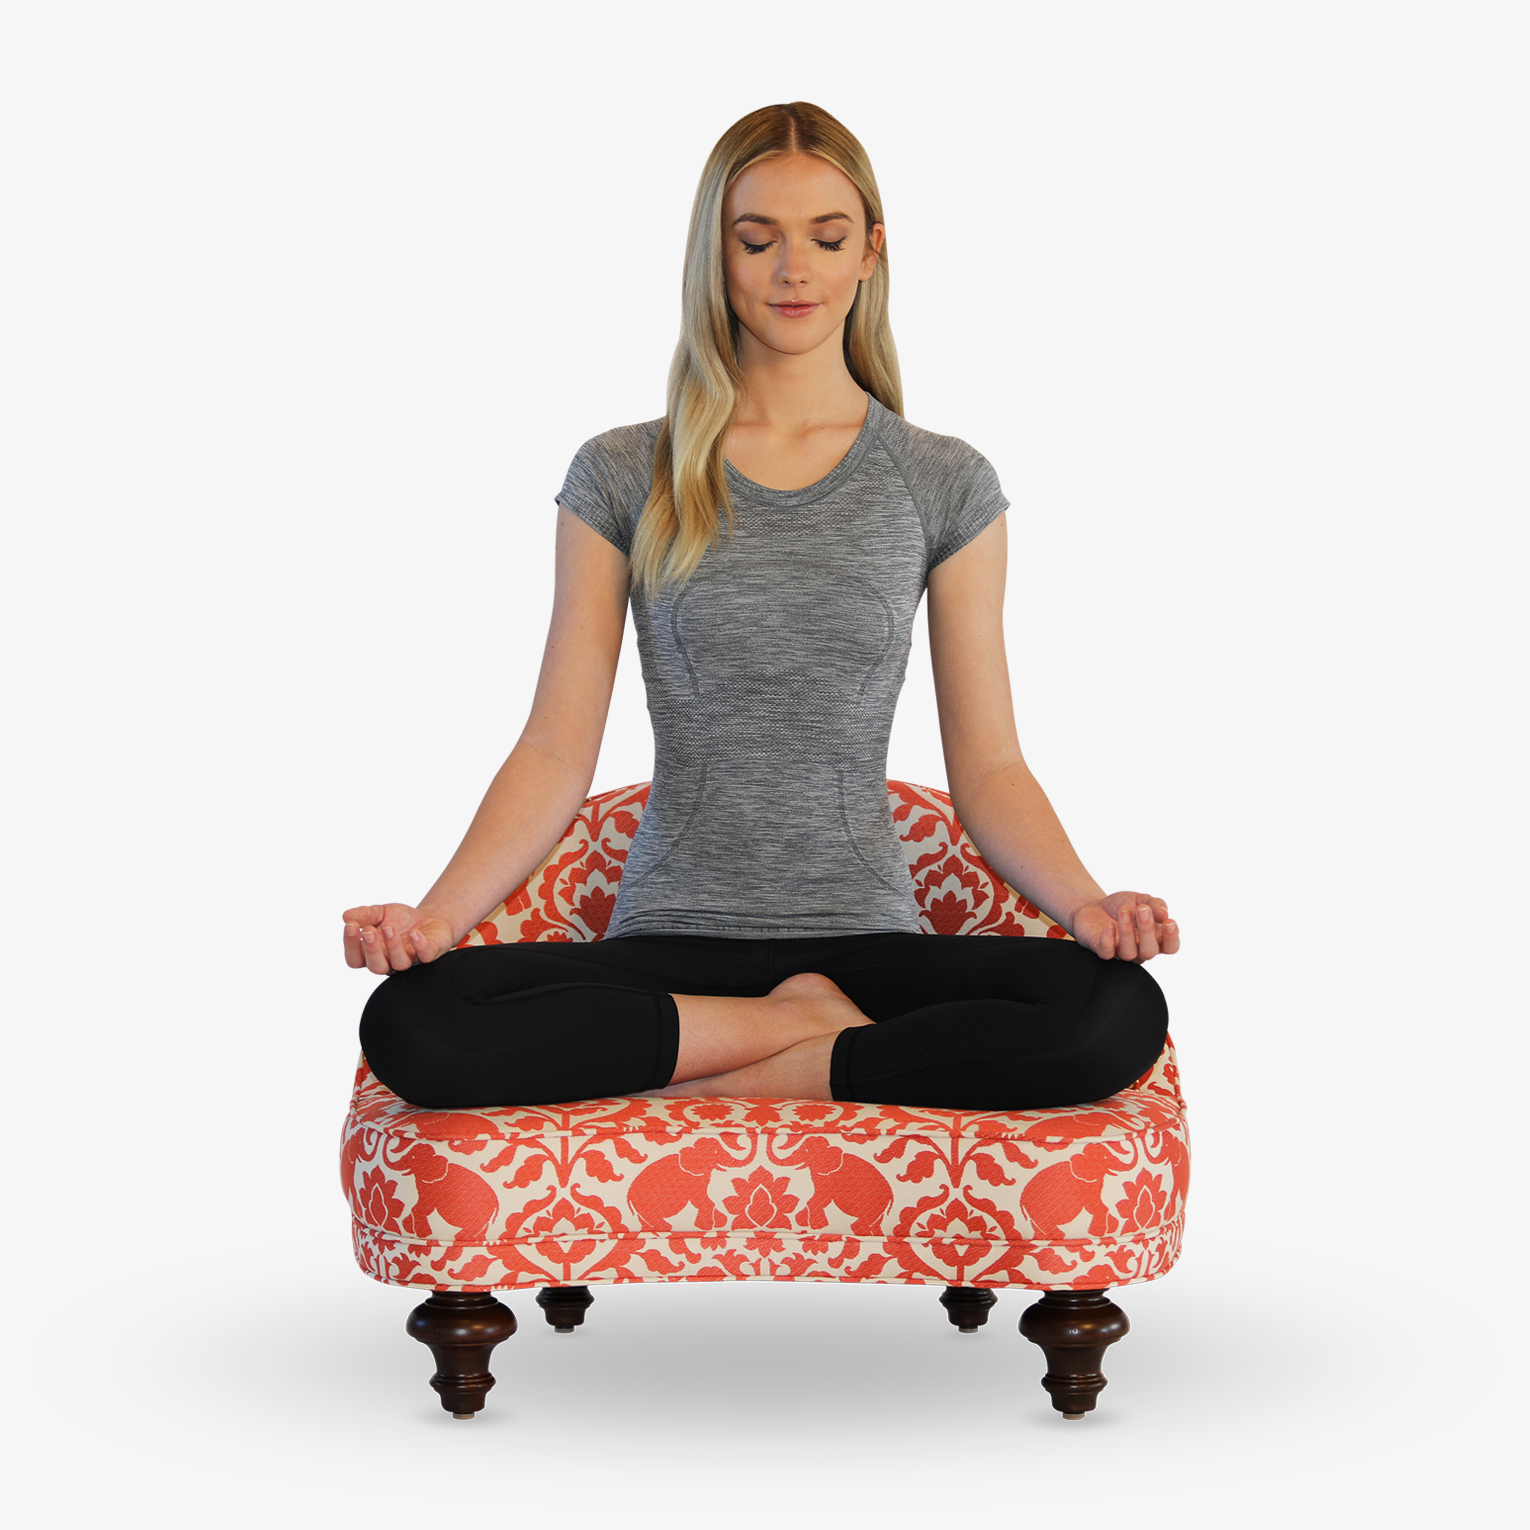 A woman meditating in the full lotus pose while using The Anahata Meditation Chair.